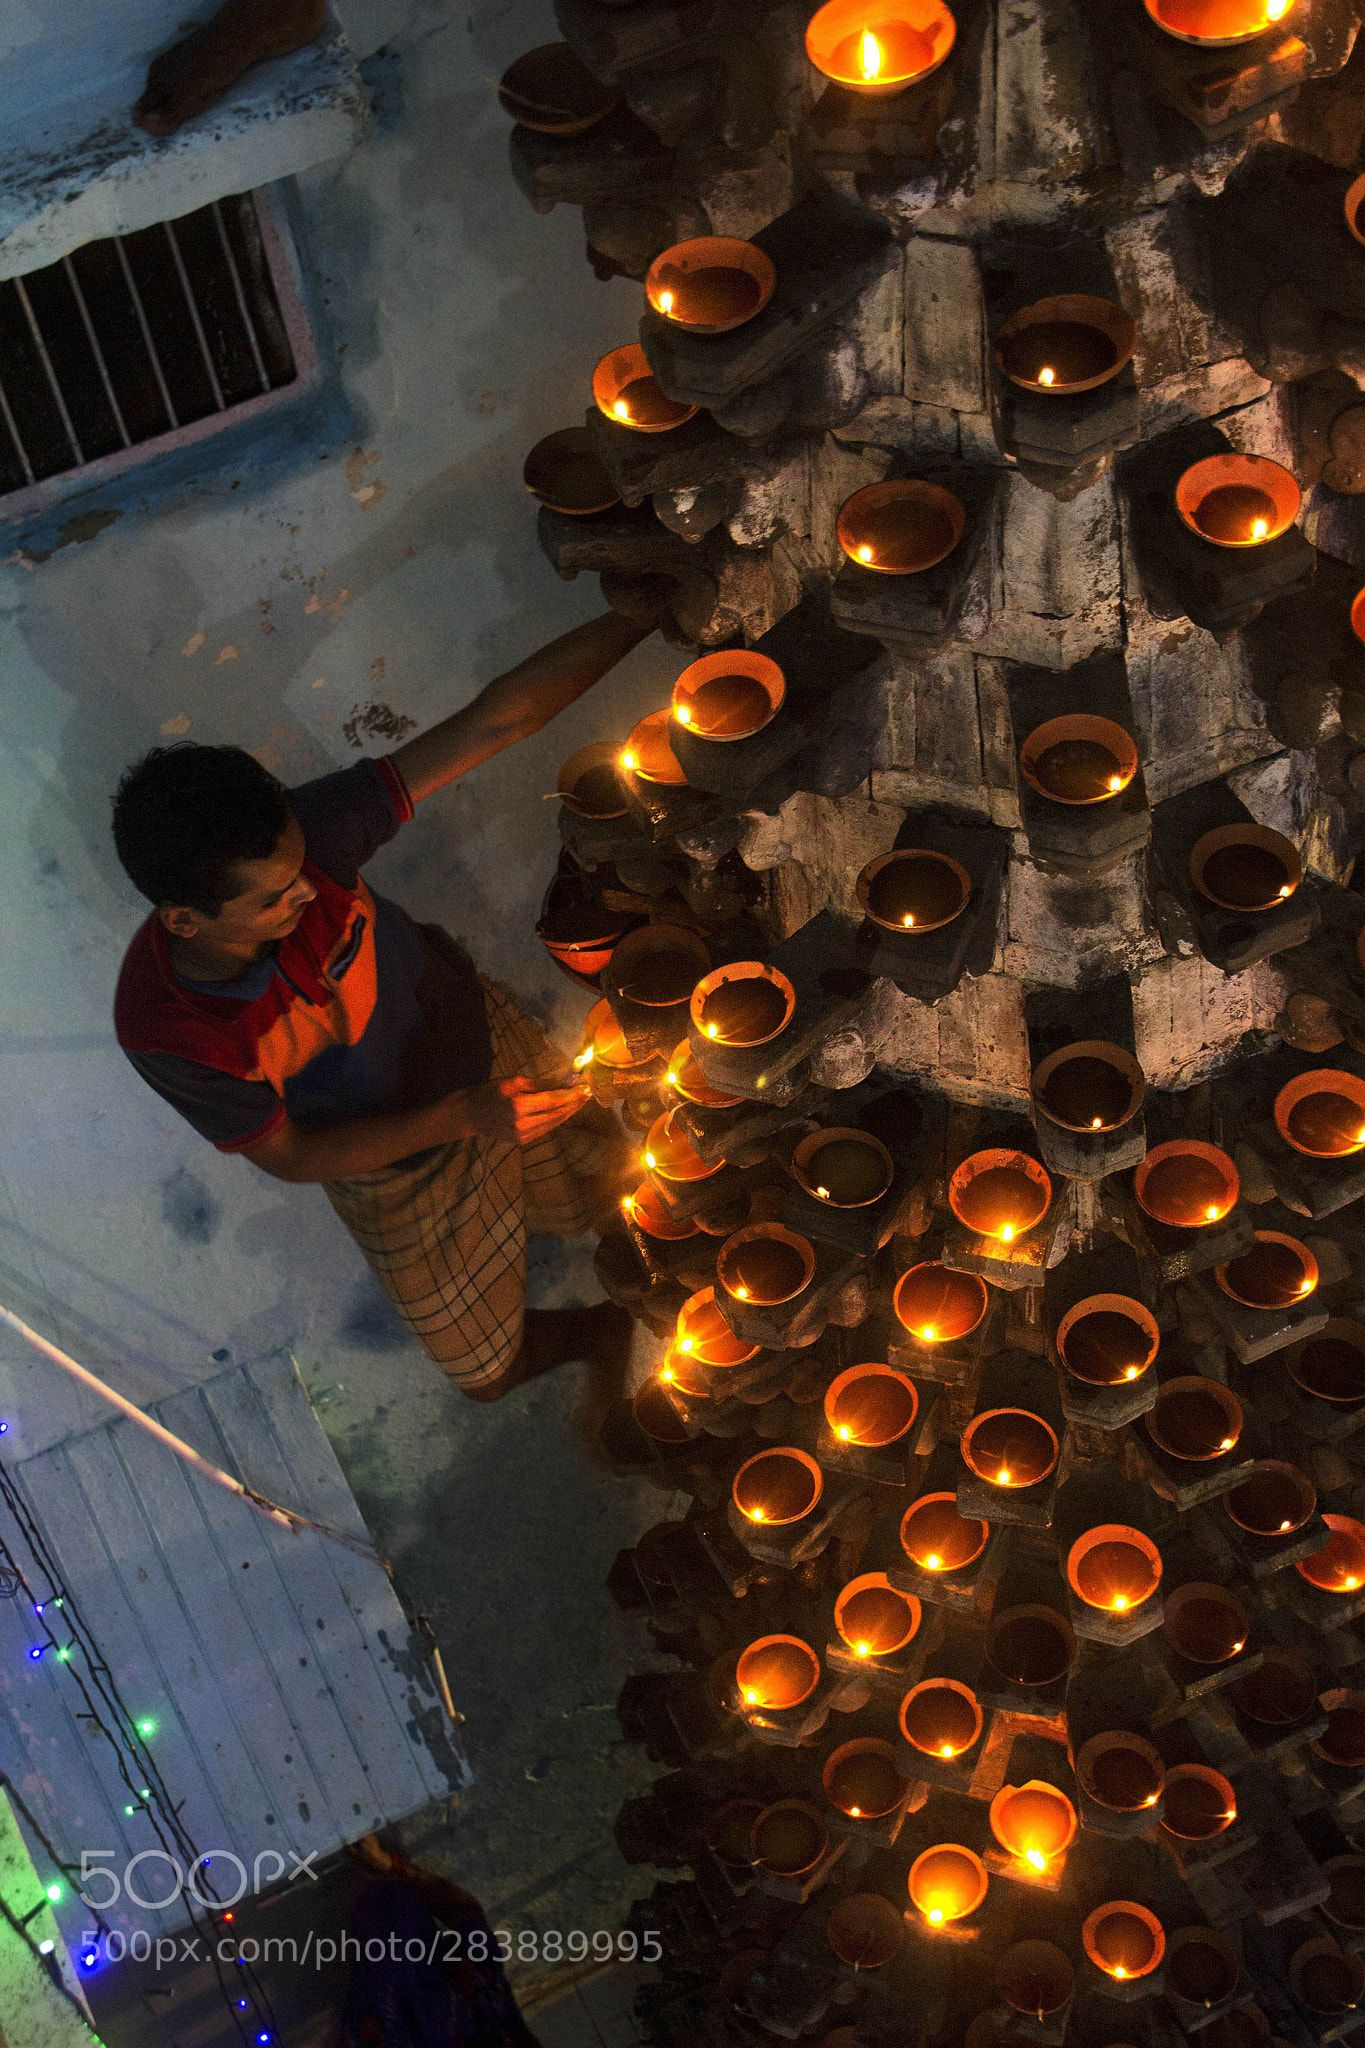 Column Of 1001 Lamps A Top Down View Dev Deepavali Is A Famous Festival Celebrated Every Year At The Holy City Varan Dev Deepawali Frequent Flyer Miles Ganges